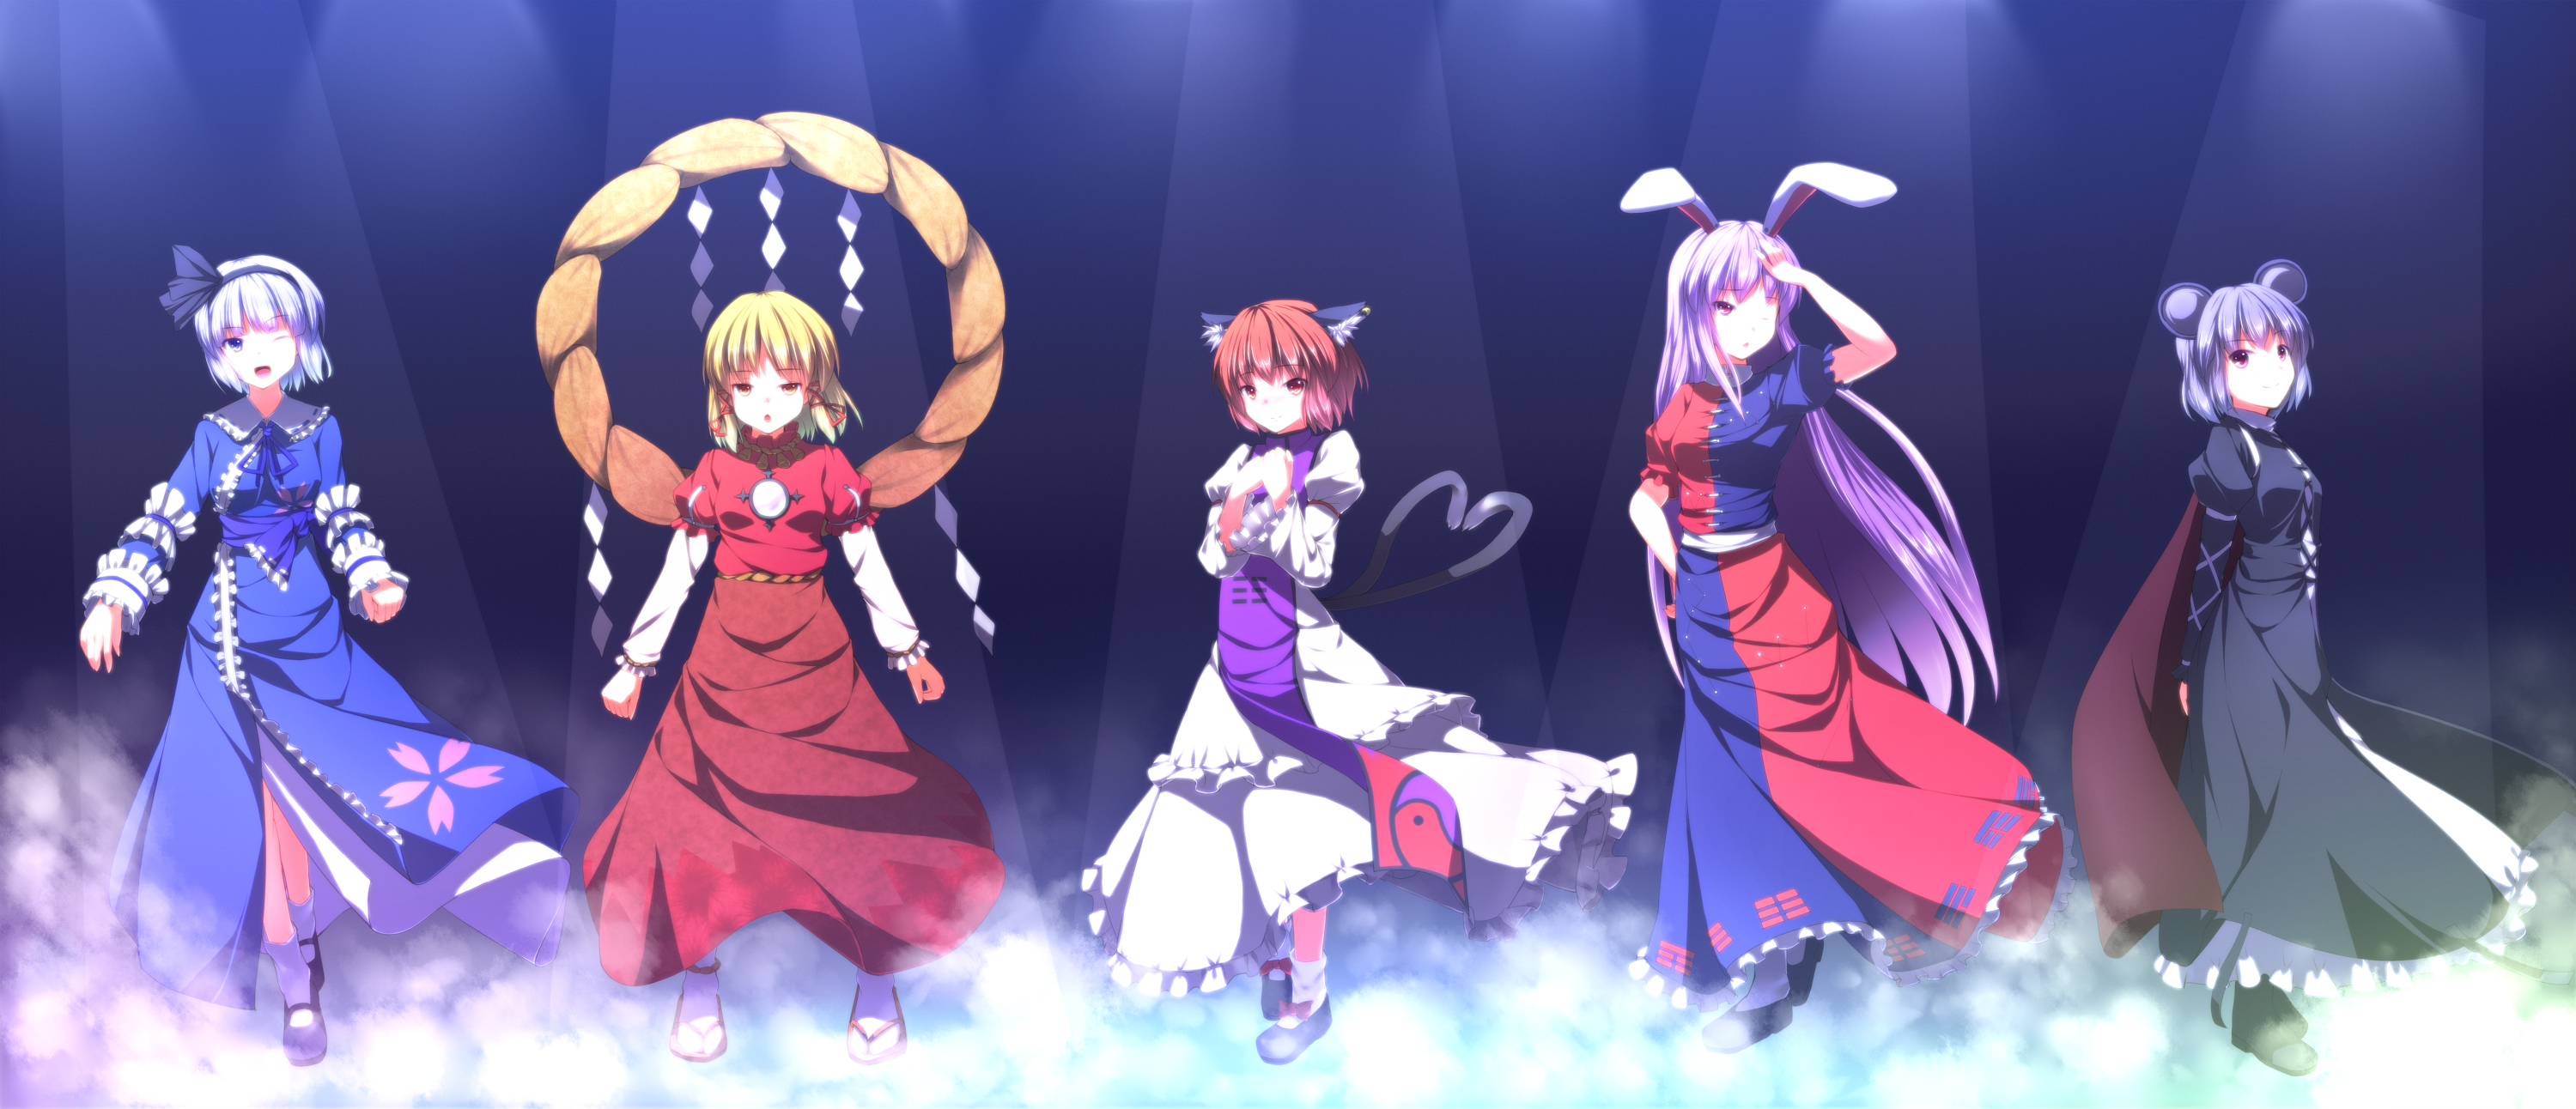 New Sad Girl Wallpaper Wallpaper Of The Week Touhou Randomness Thing